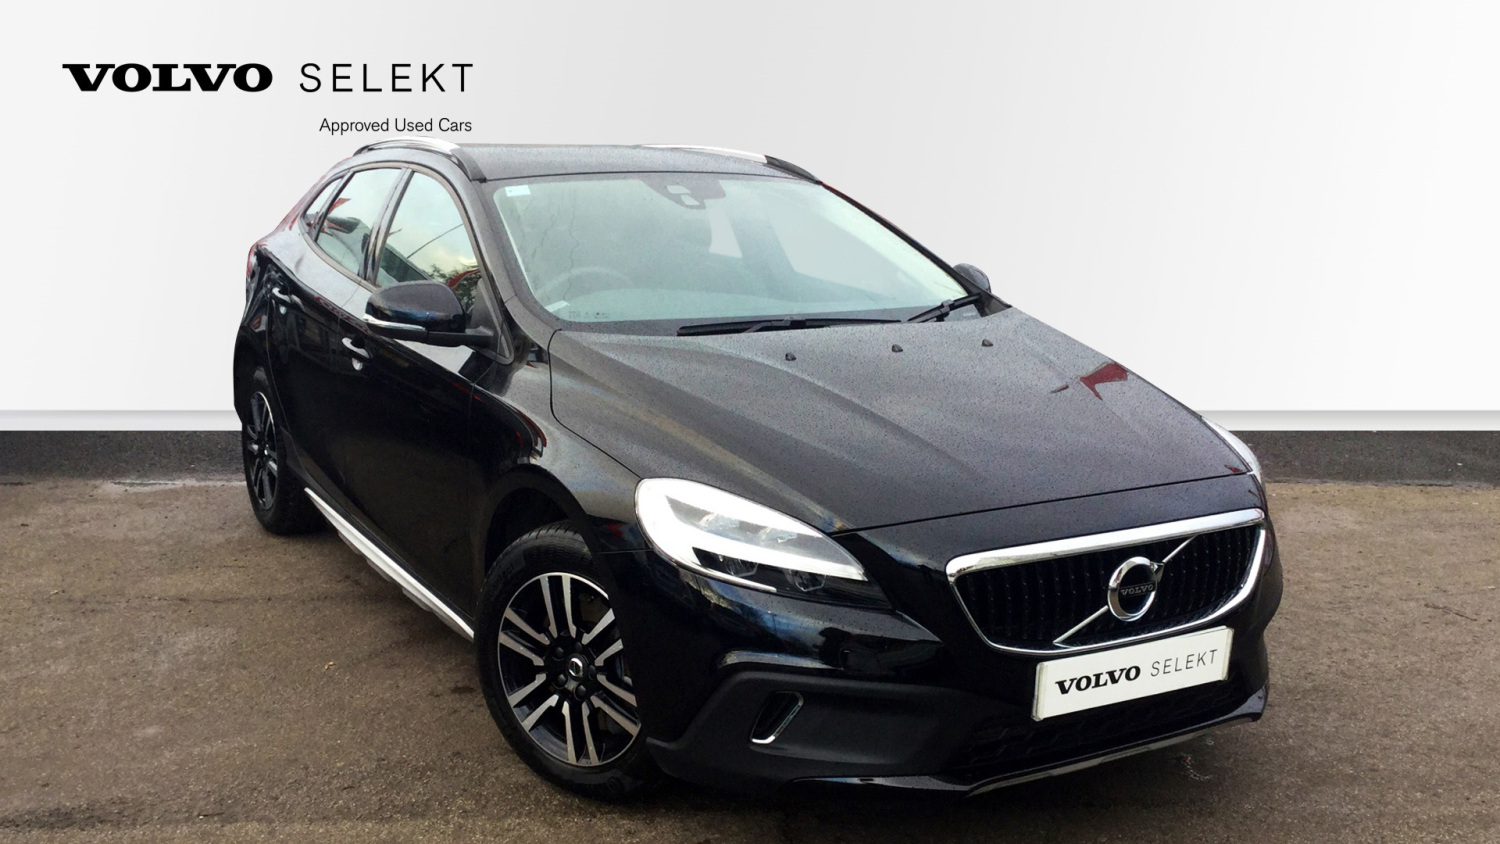 used volvo v40 t3 152 cross country 5dr petrol hatchback. Black Bedroom Furniture Sets. Home Design Ideas